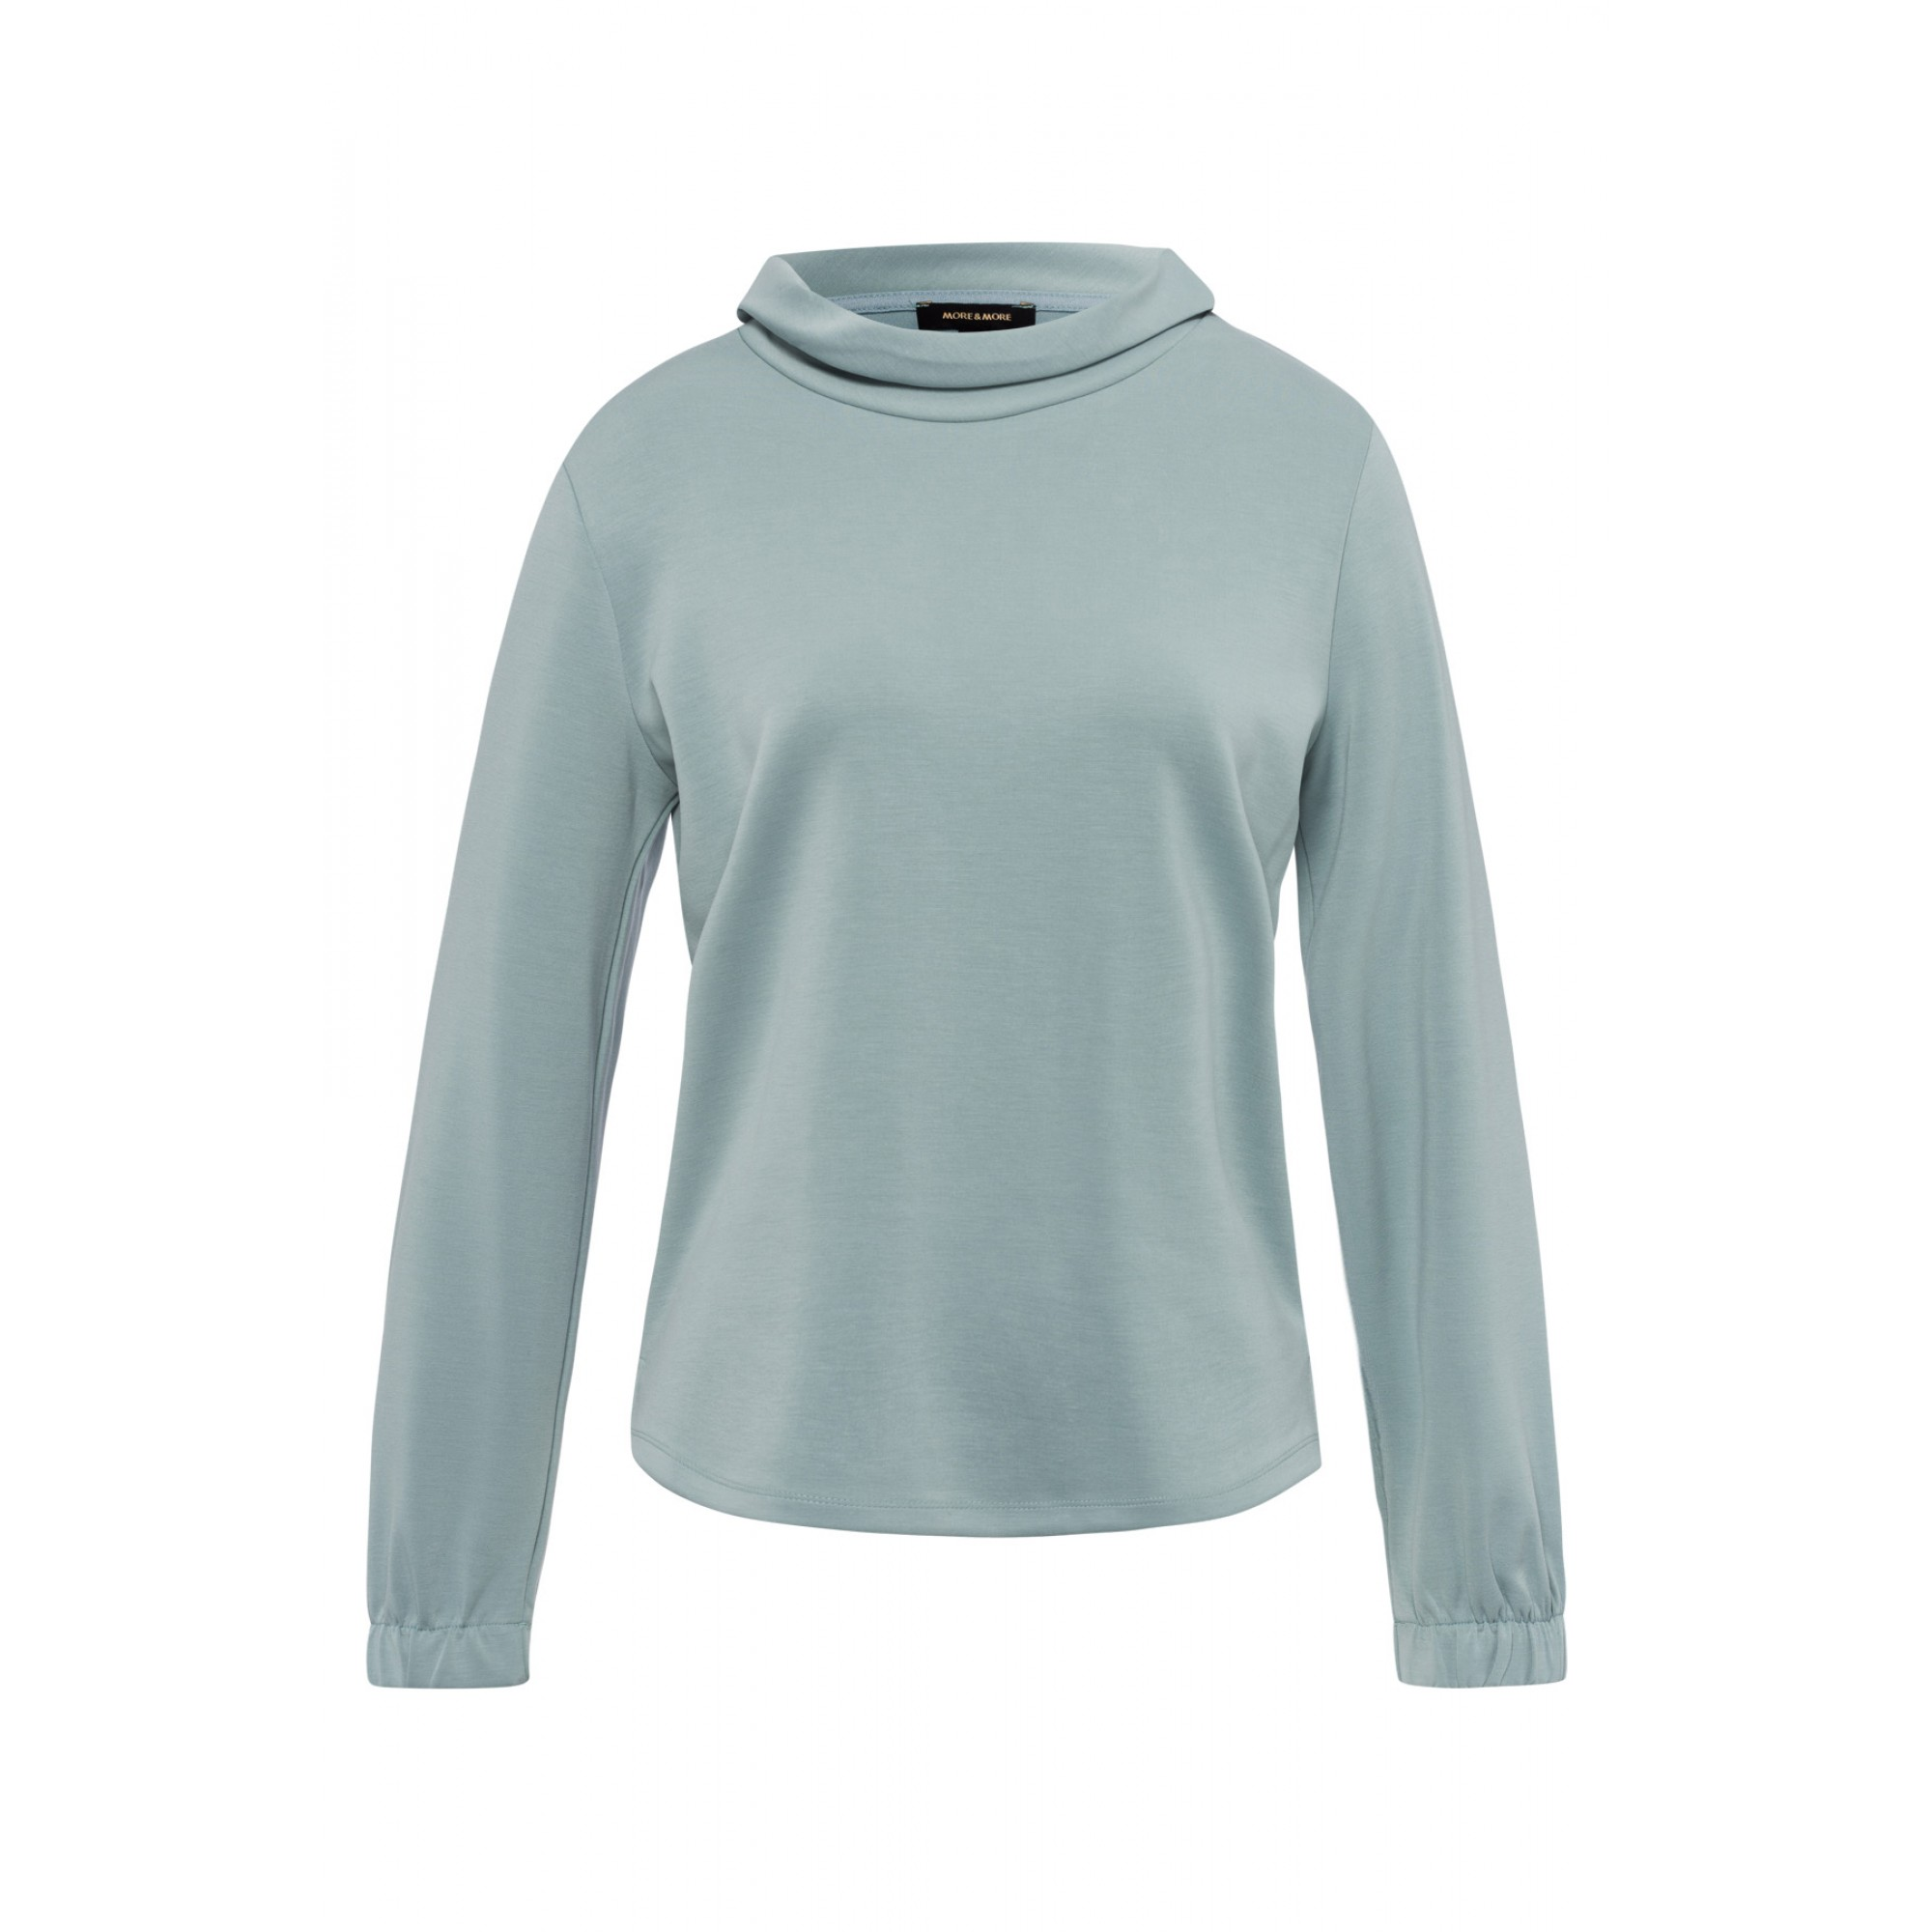 Sweatshirt, mint 01640285-0341 1